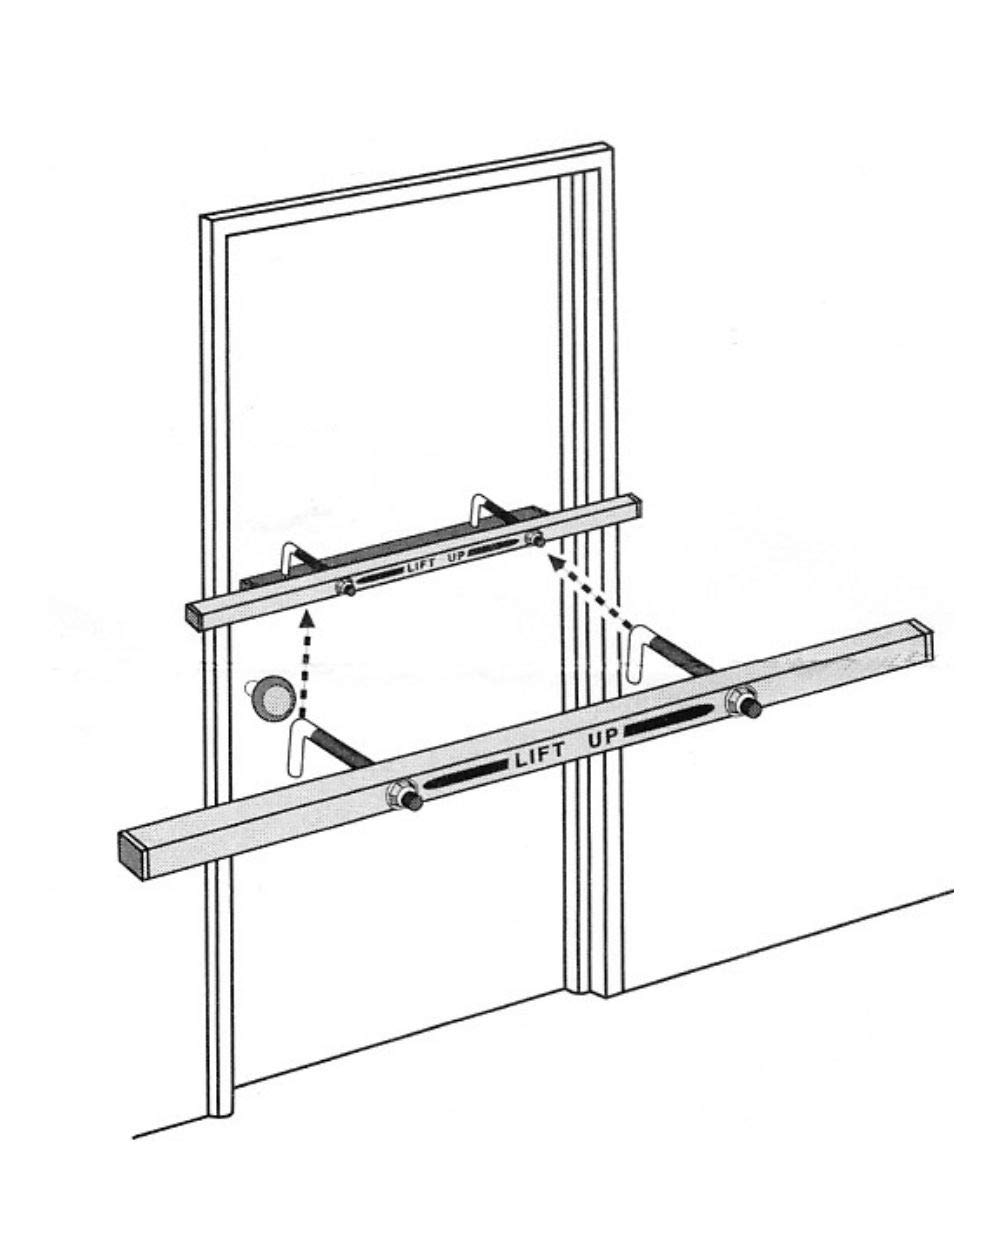 Exit Security SB-010042 Single Outswing Door Bar by Exit Security Inc